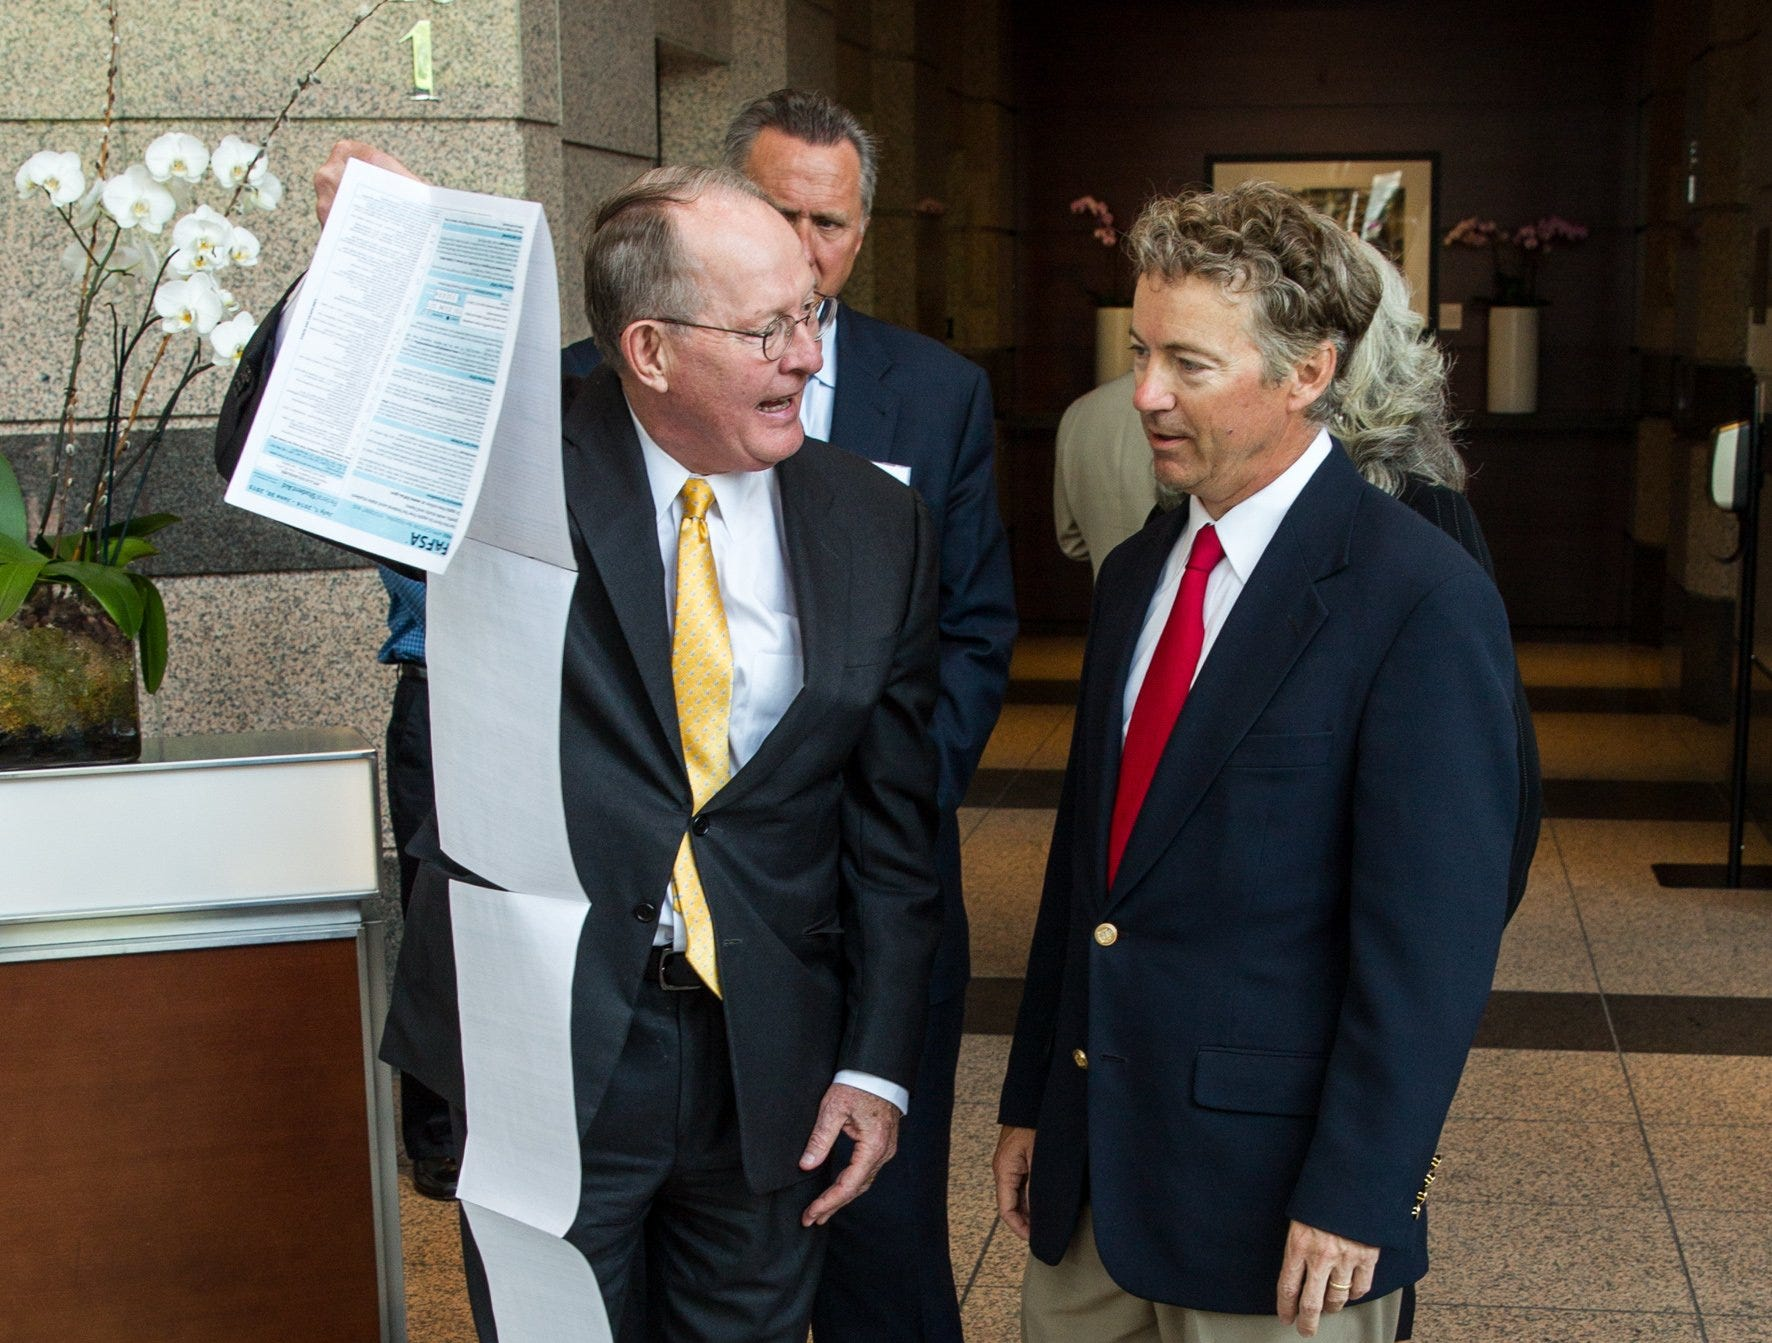 U.S. Sens. Lamar Alexander, R-Tenn., left,  and Rand Paul, R-Ky., discuss the federal student application for financial assistance after a press conference in Nashville, Tenn., on Monday, June 30, 2014.